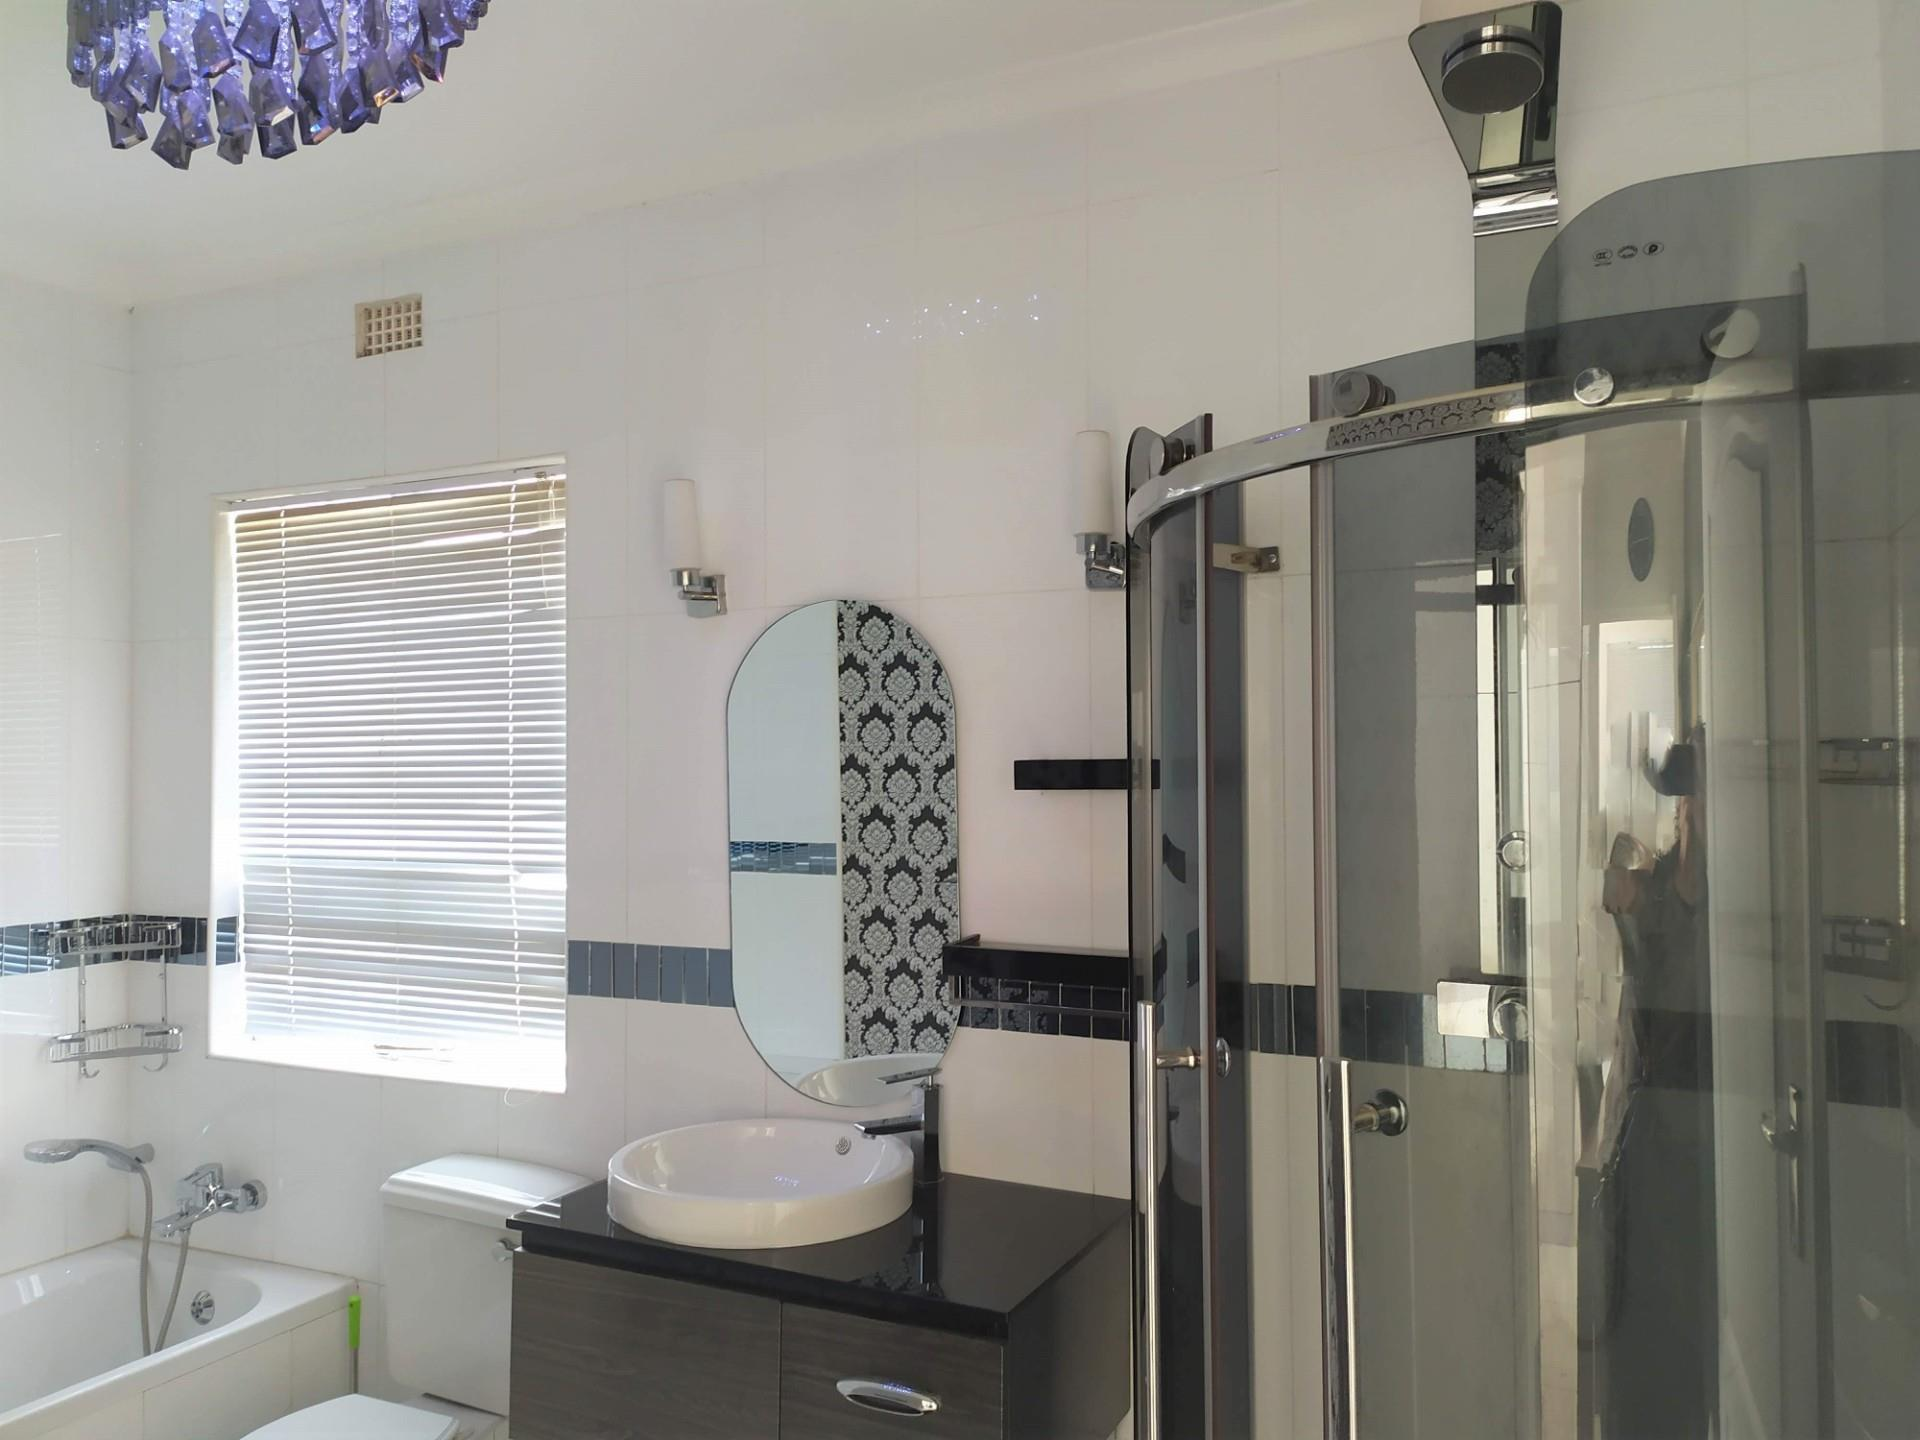 10 Bedroom House For Sale in Gaborone